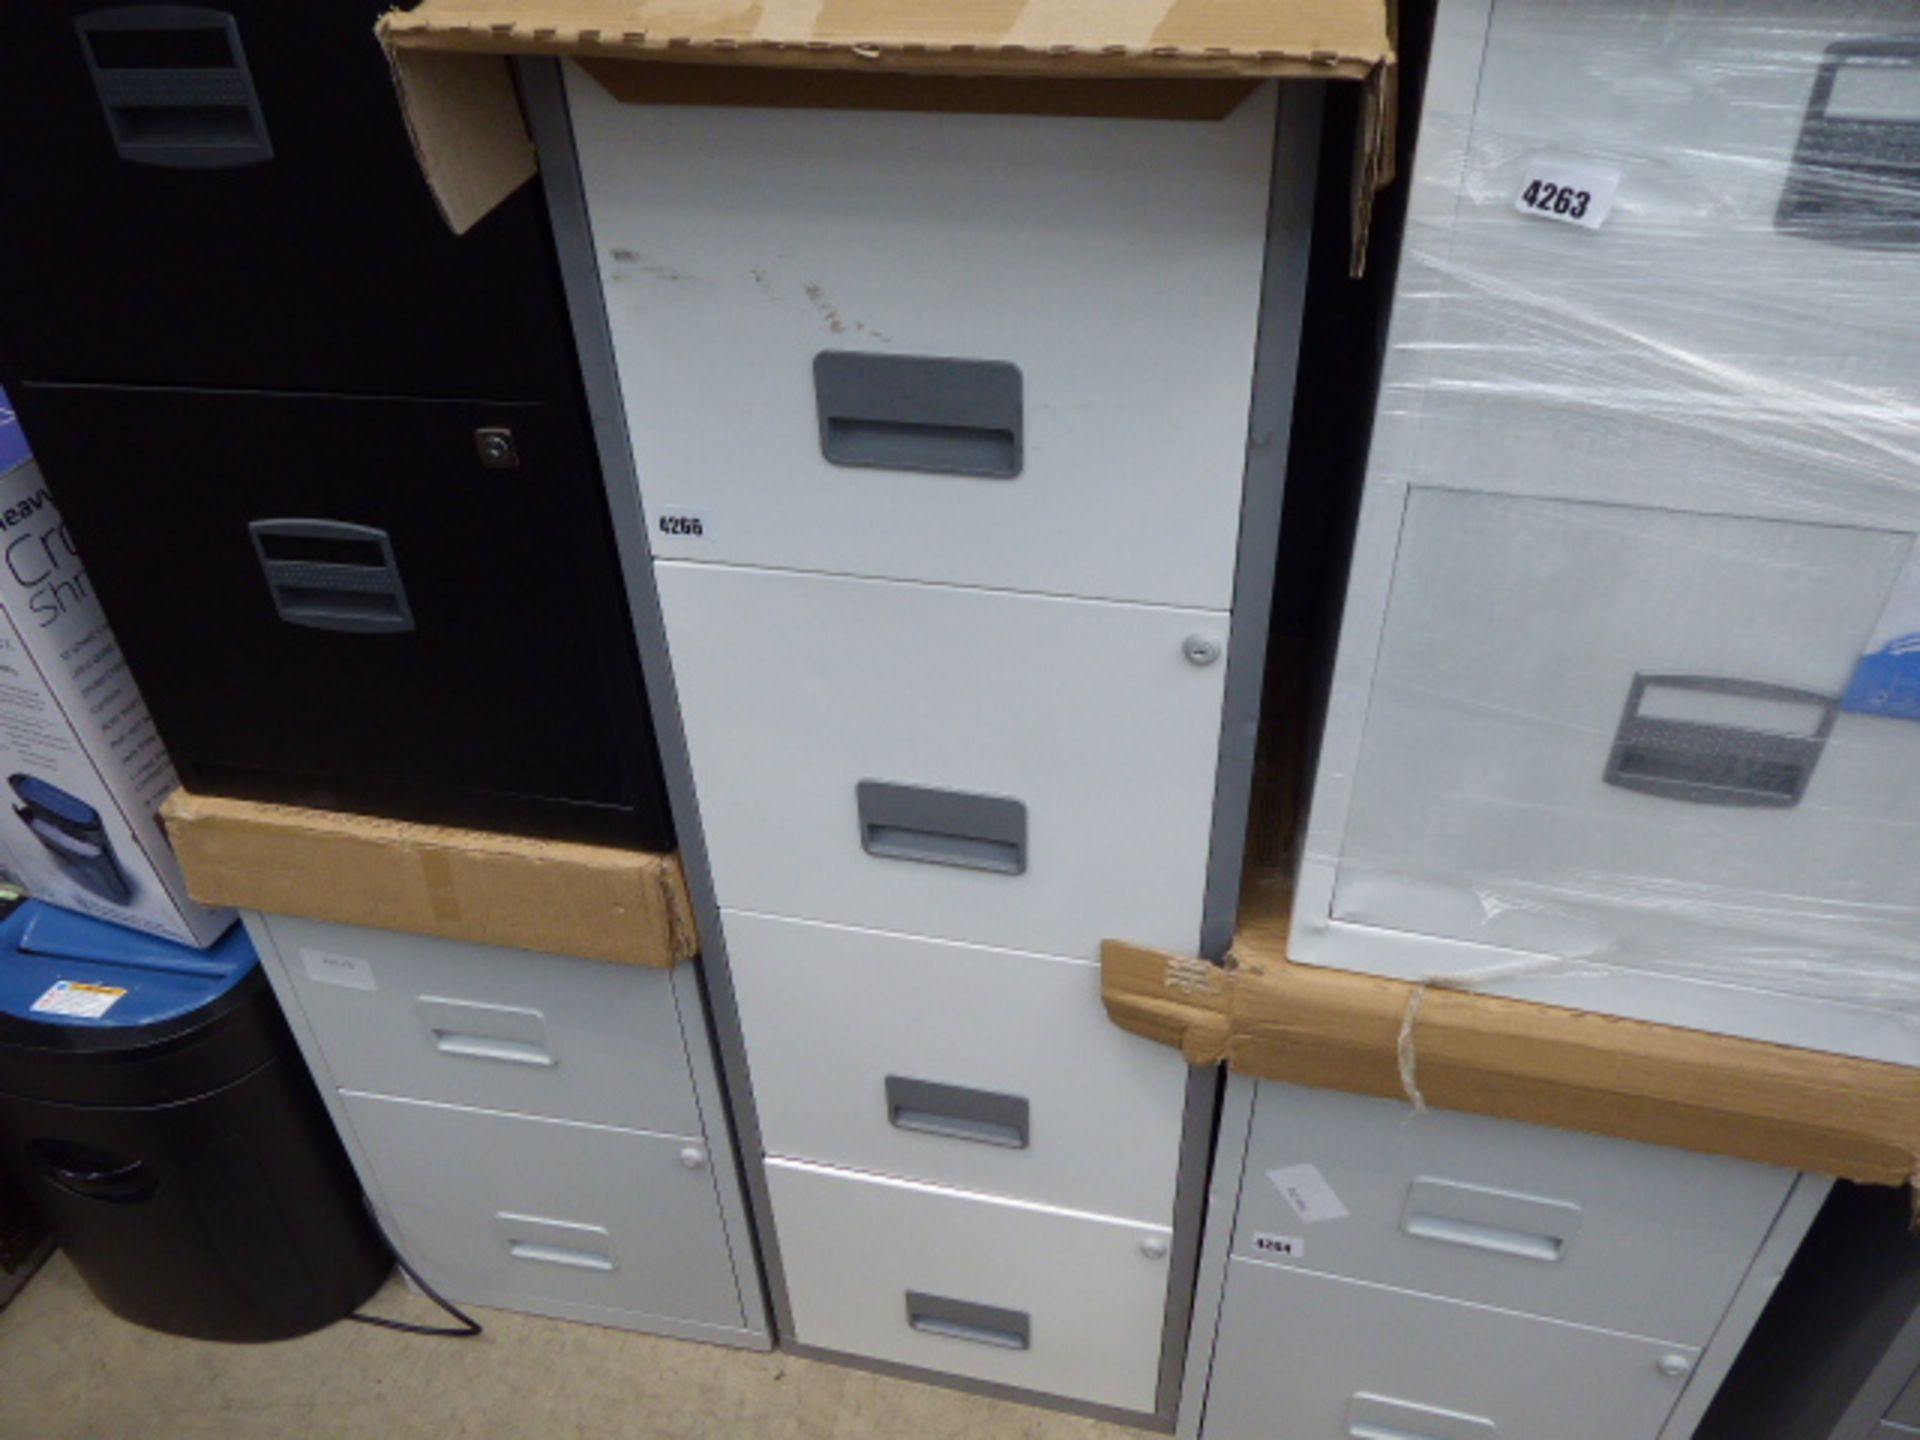 Lot 4266 - 4267 4 drawer white and grey metal filing cabinet